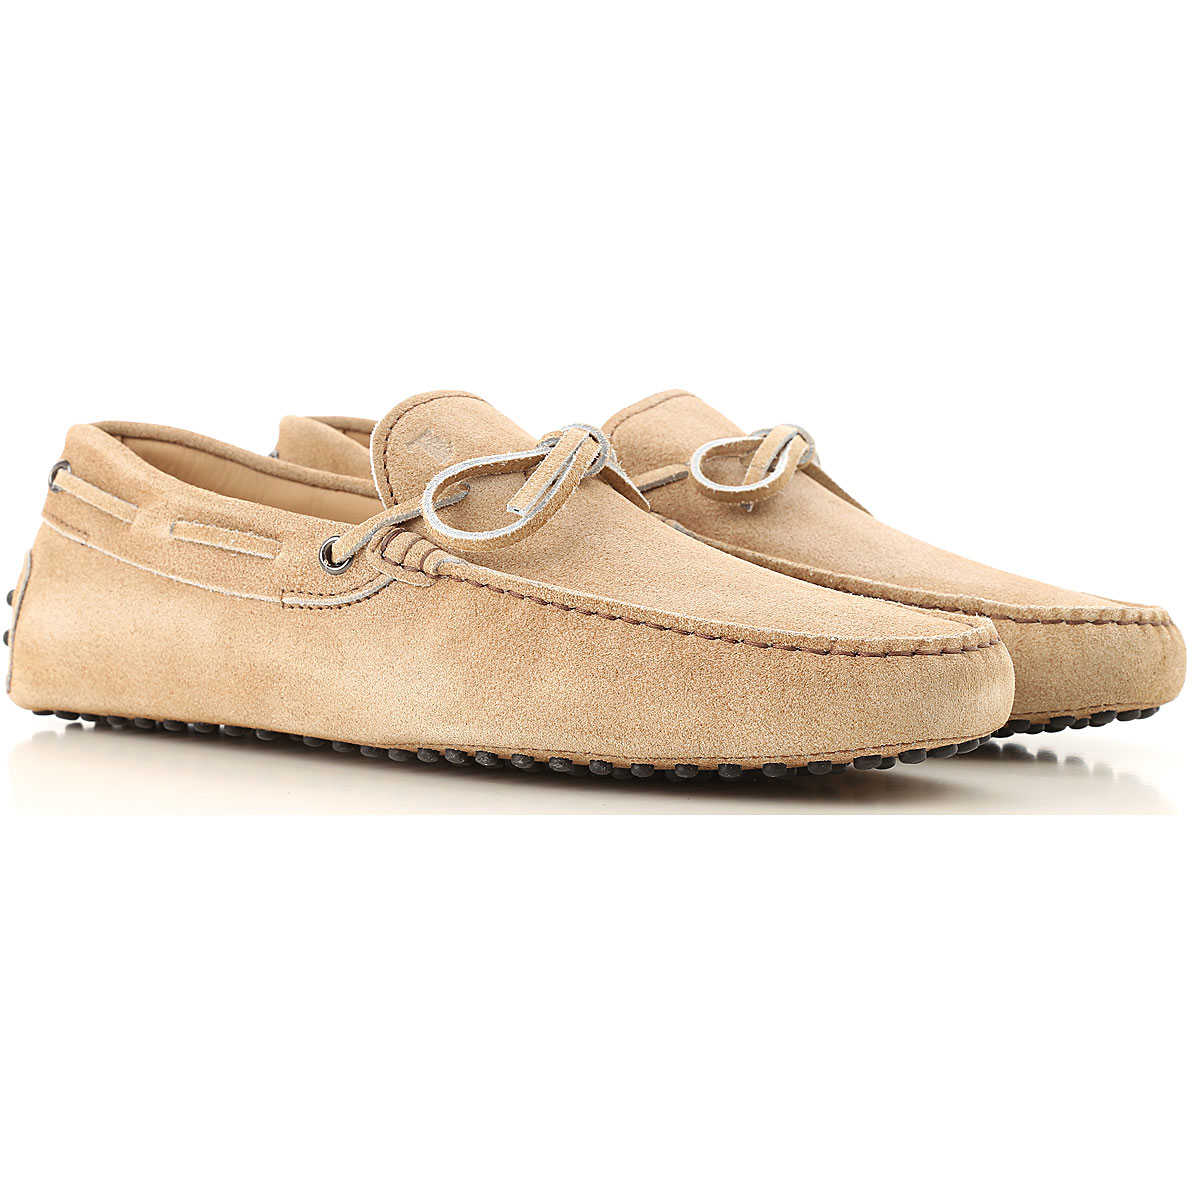 Tods Driver Loafer Shoes for Men Biscuit USA - GOOFASH